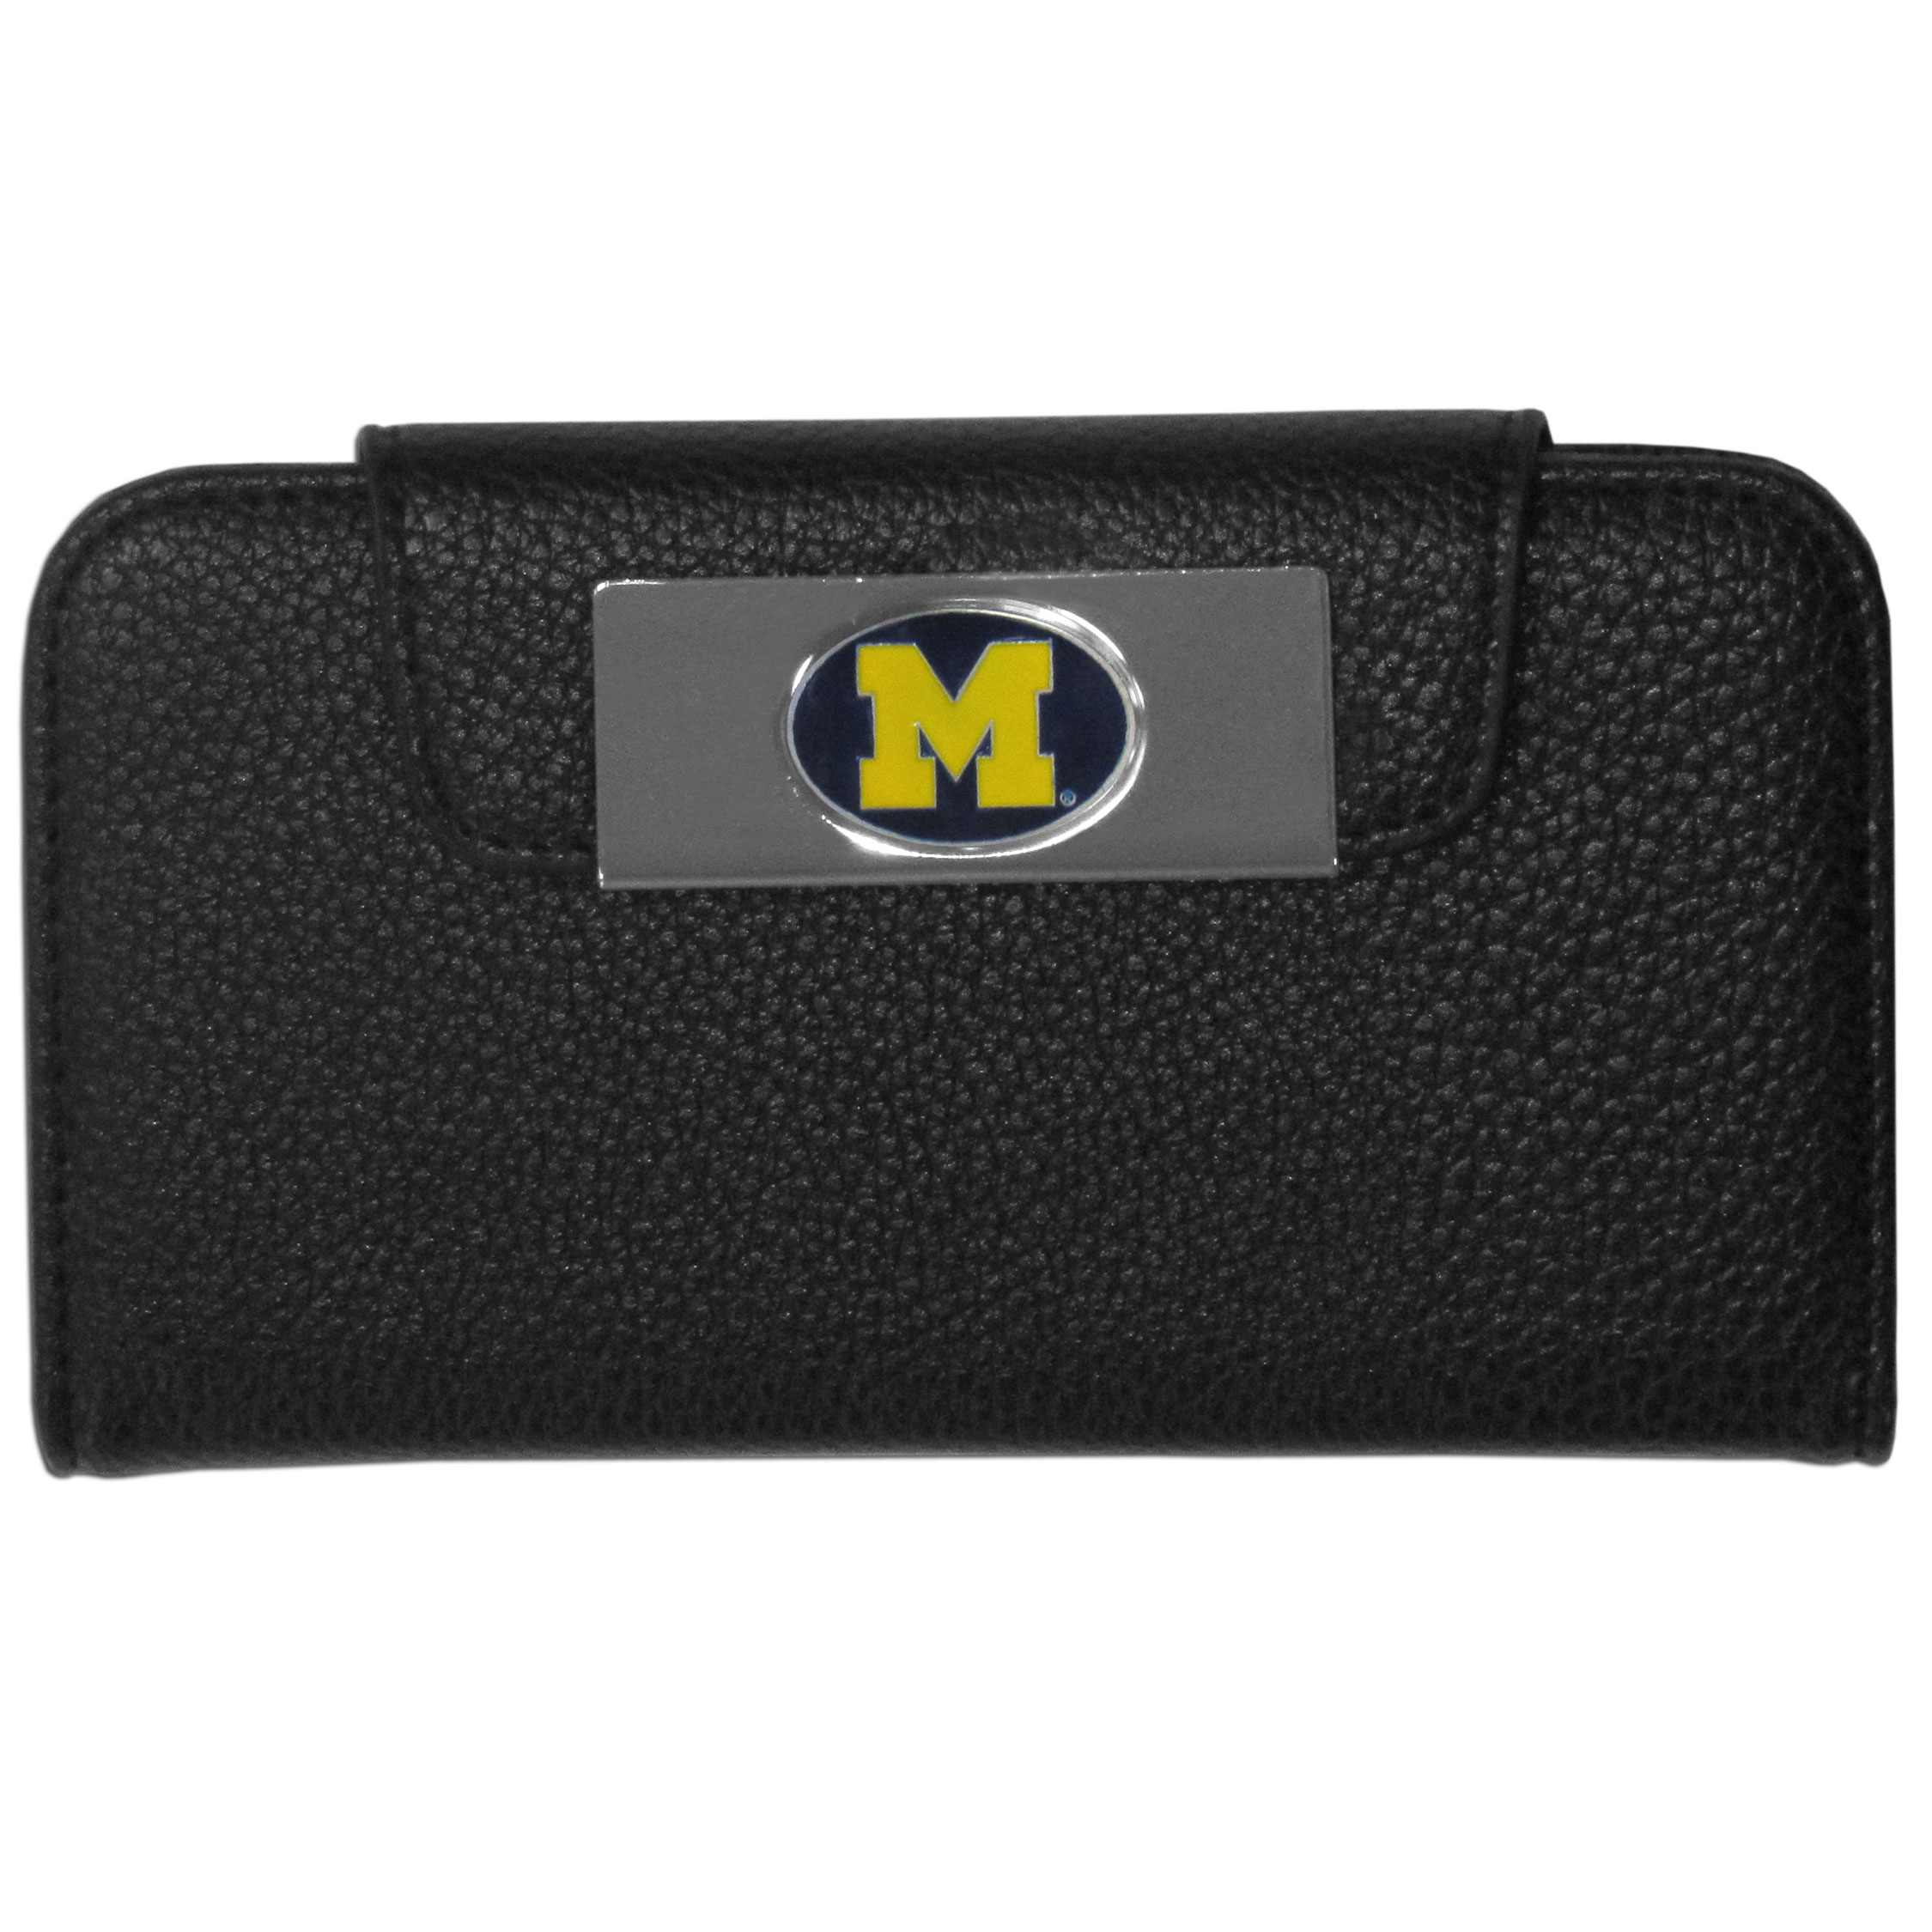 Michigan Wolverines Samsung Galaxy S4 Wallet Case - This new & wildly popular case is ideal for those who like to travel light! The stylish case has an inner hard shell that securely holds your phone while allowing complete access to the phone's functionality. The flip cover has slots for credit cards, business cards and identification. The magnetic flip cover has a metal Michigan Wolverines emblem on a high polish chrome backing. Fits the Samsung Galaxy S4